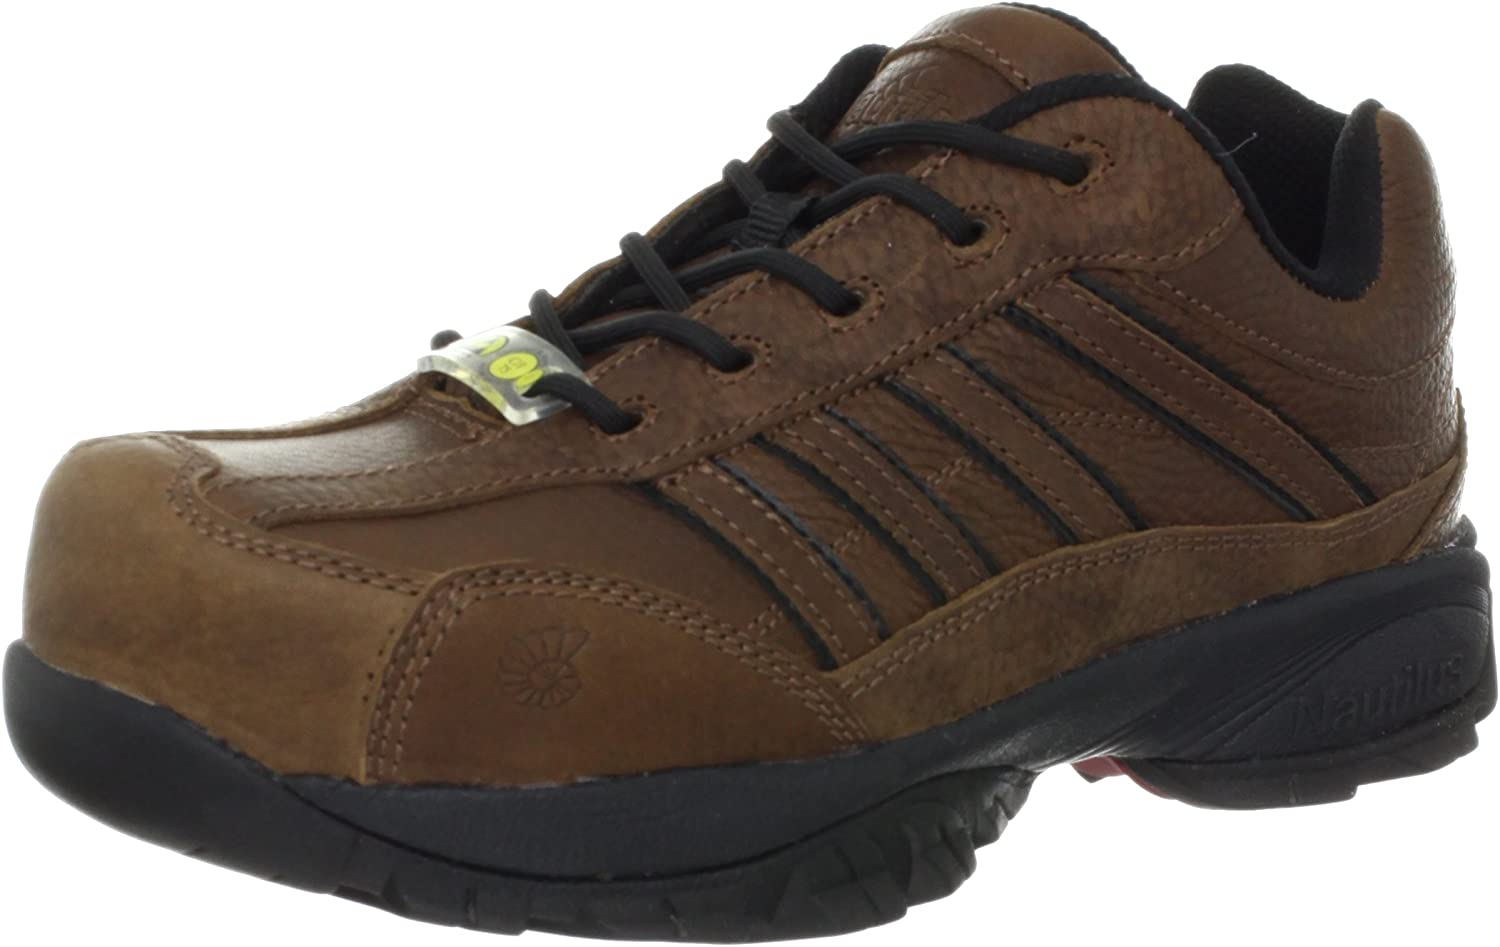 Nautilus 1670 ESD No Exposed Metal Safety Toe Oxford